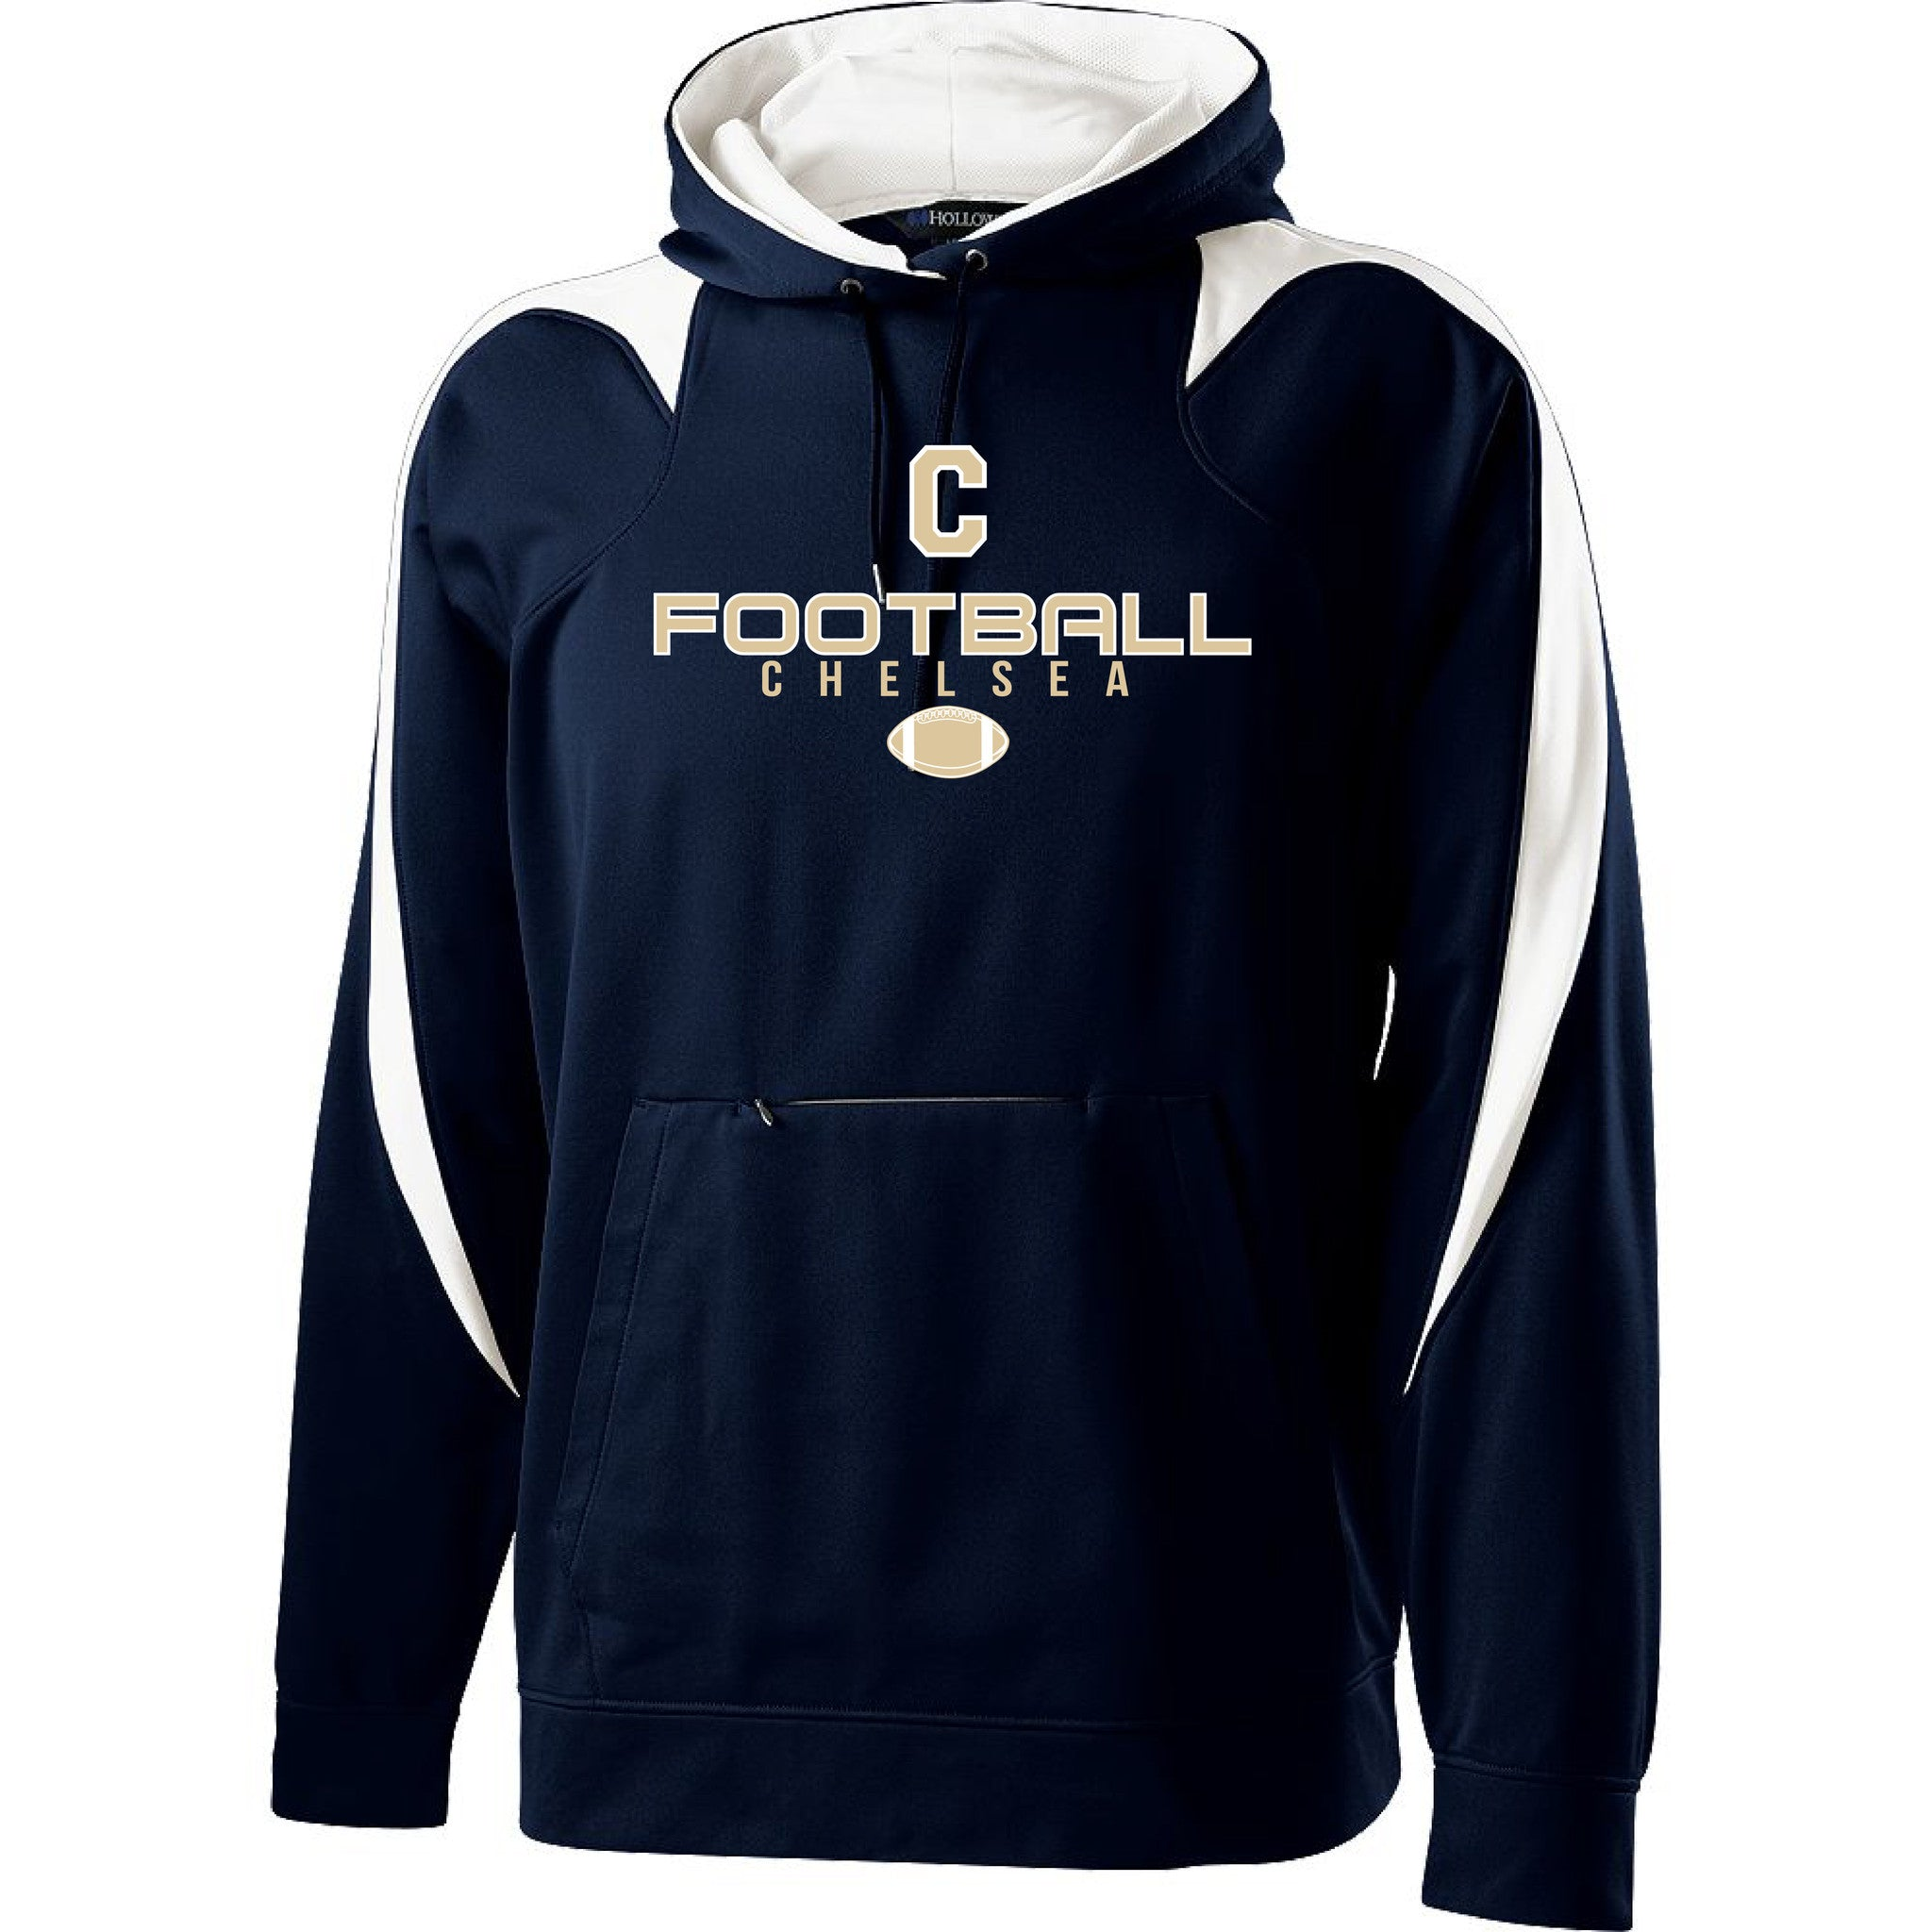 Adult Chelsea Football Chaos Performance Hoodie - Pick your Design